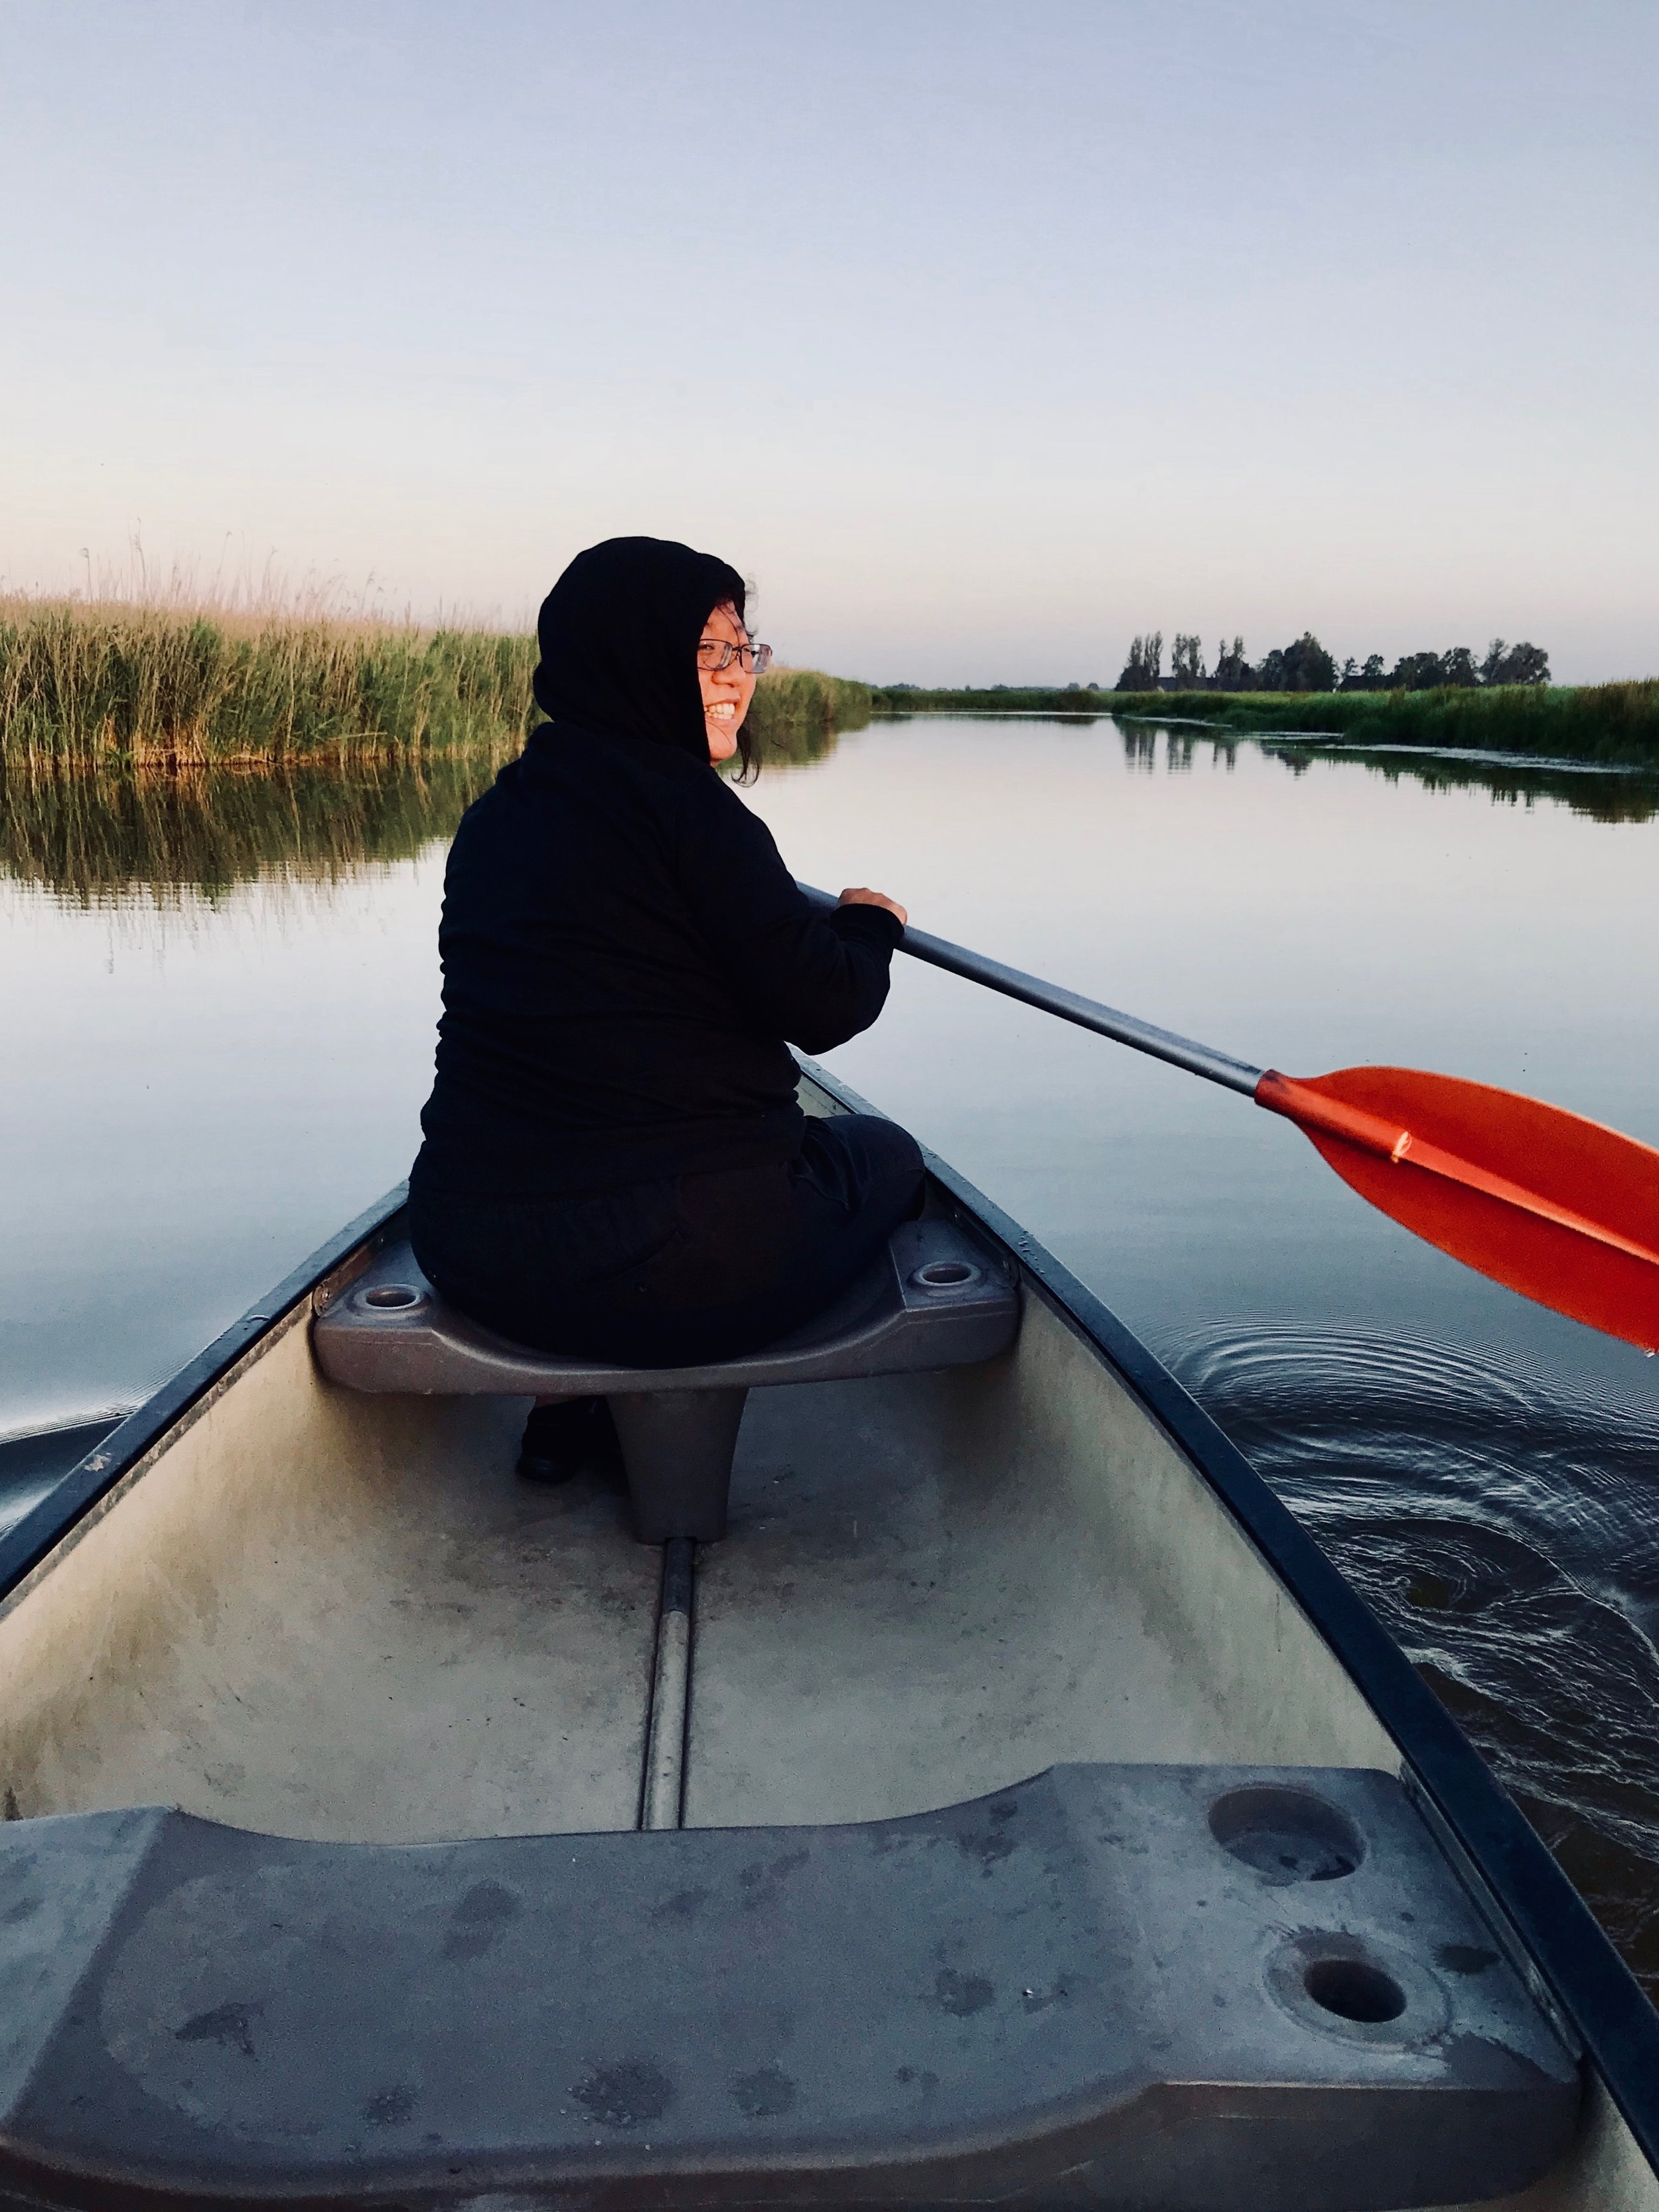 Jennifer Hsiao canoeing on the canal in Holland.